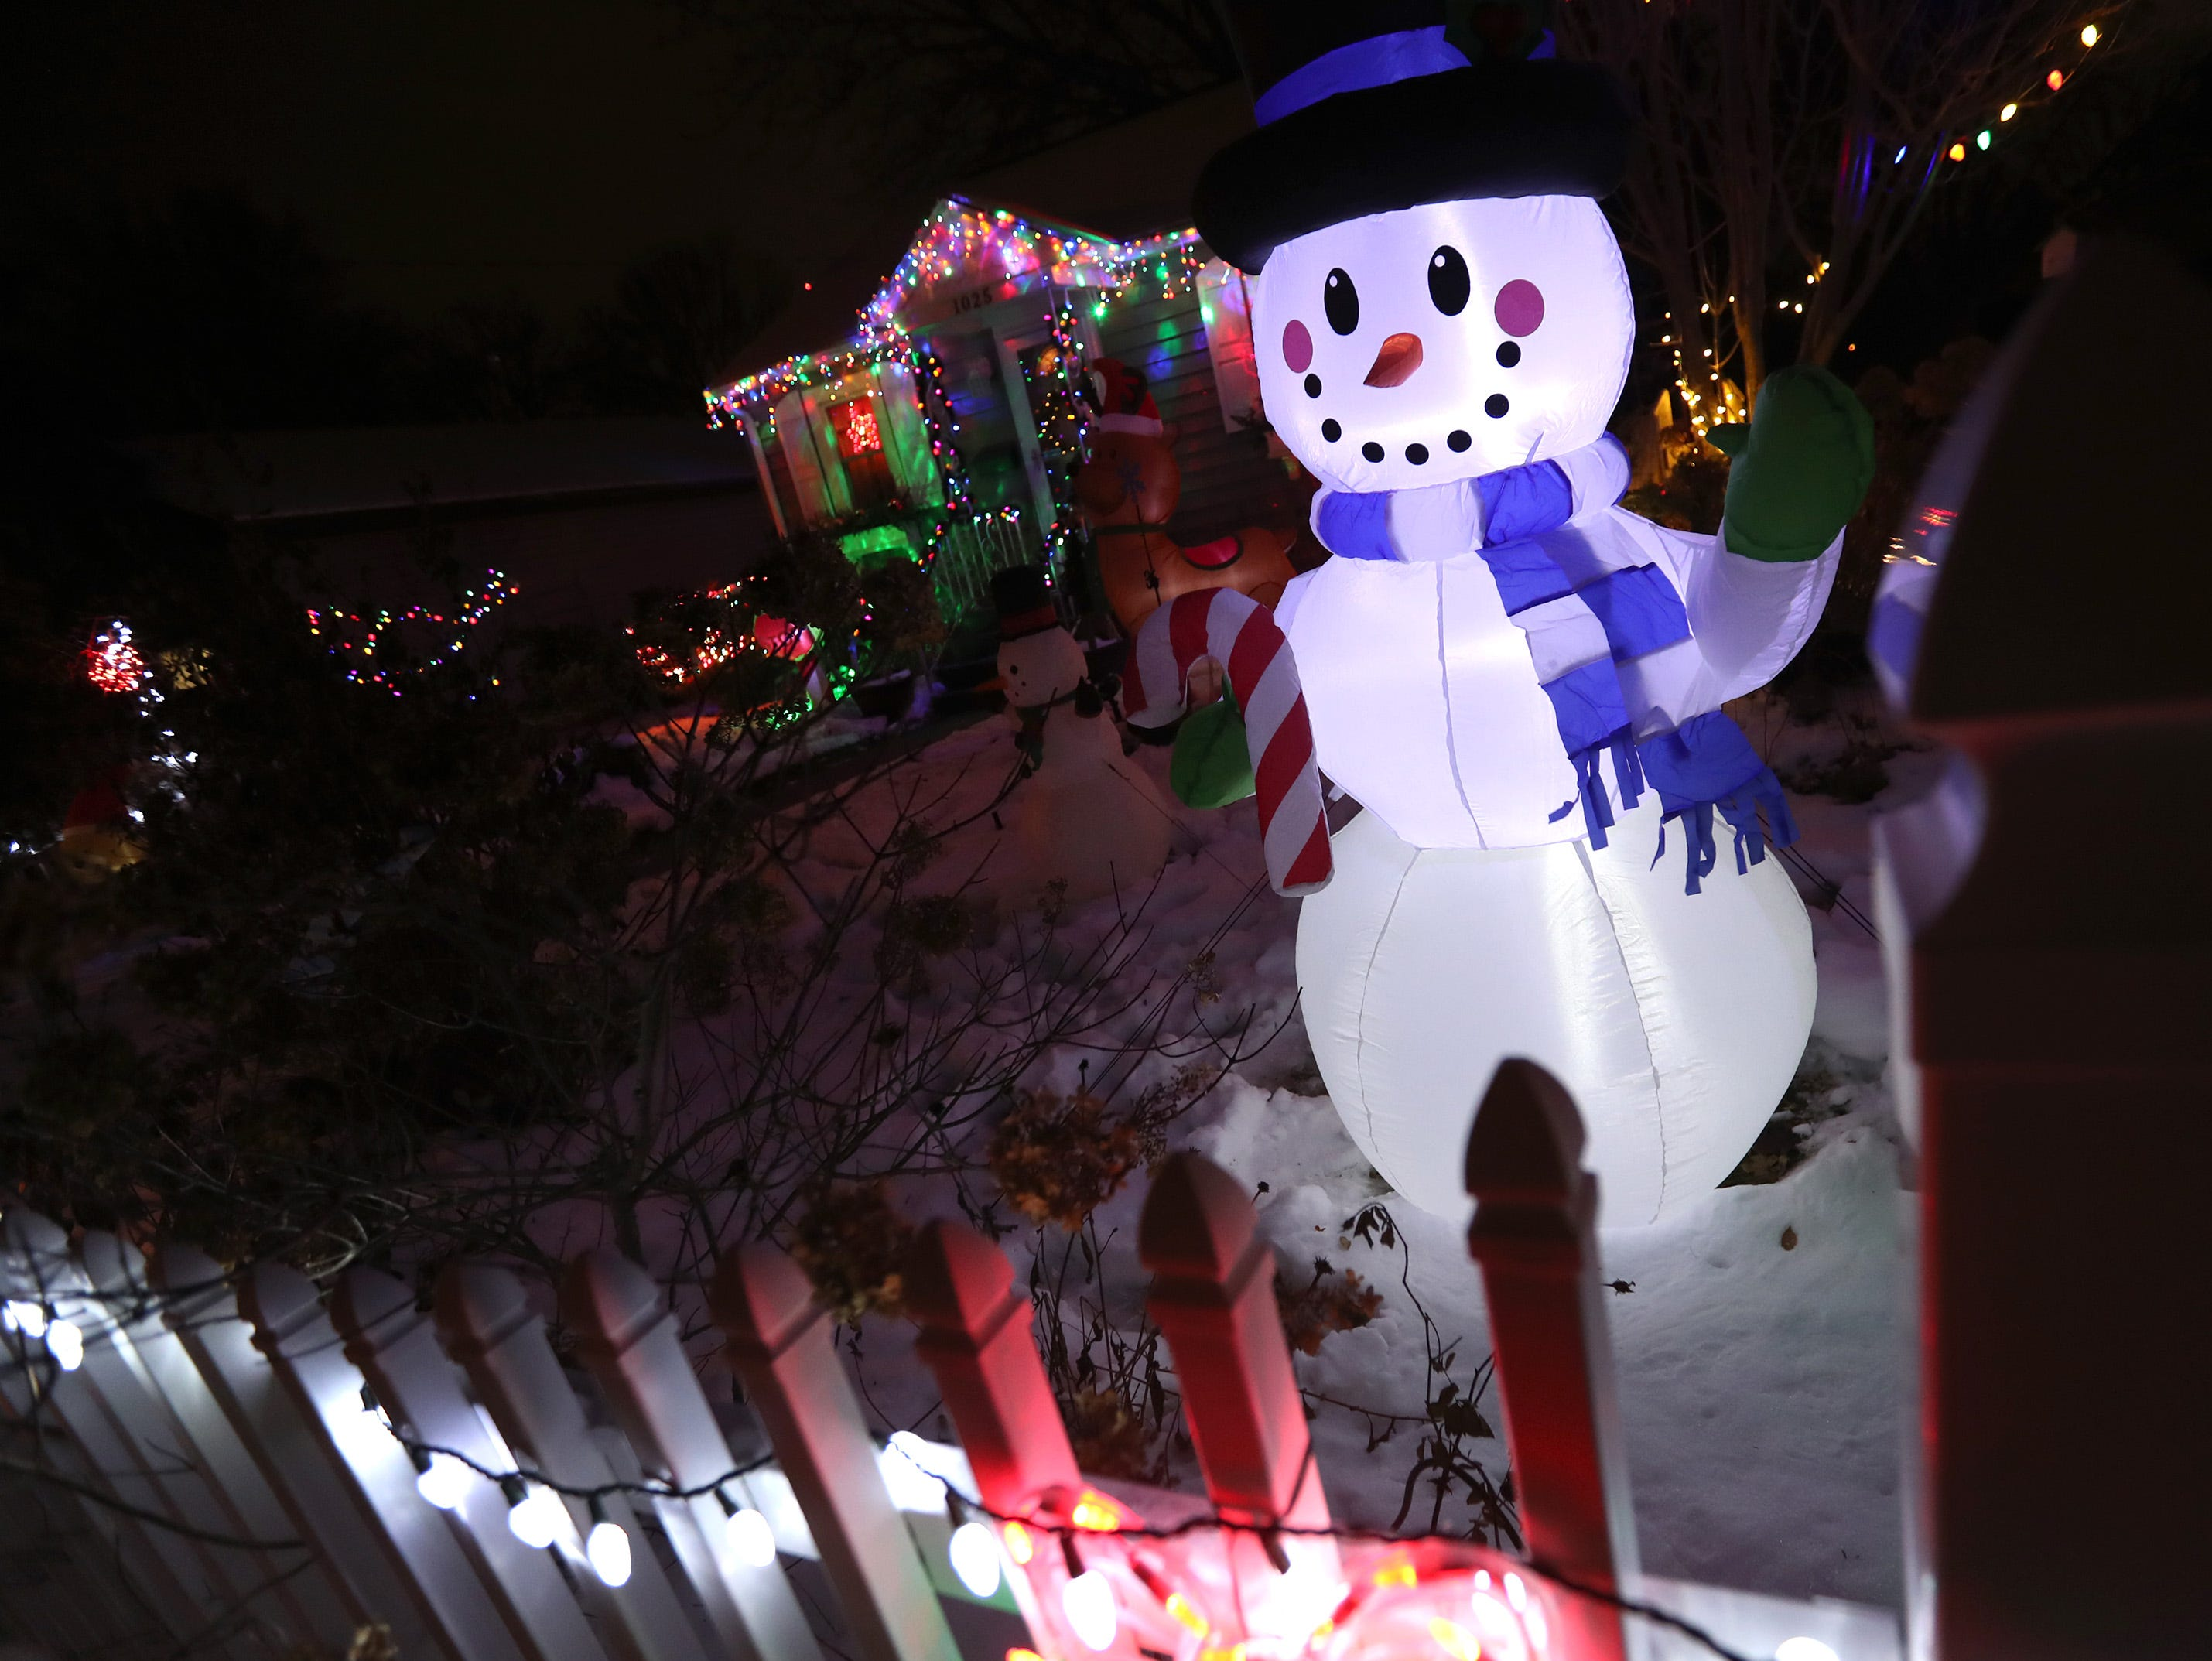 A blowup snowman and a collection of Christmas lights decorate a yard on the 1000 Block of South Kernan Avenue Wednesday Dec. 5, 2018, in Appleton, Wis.